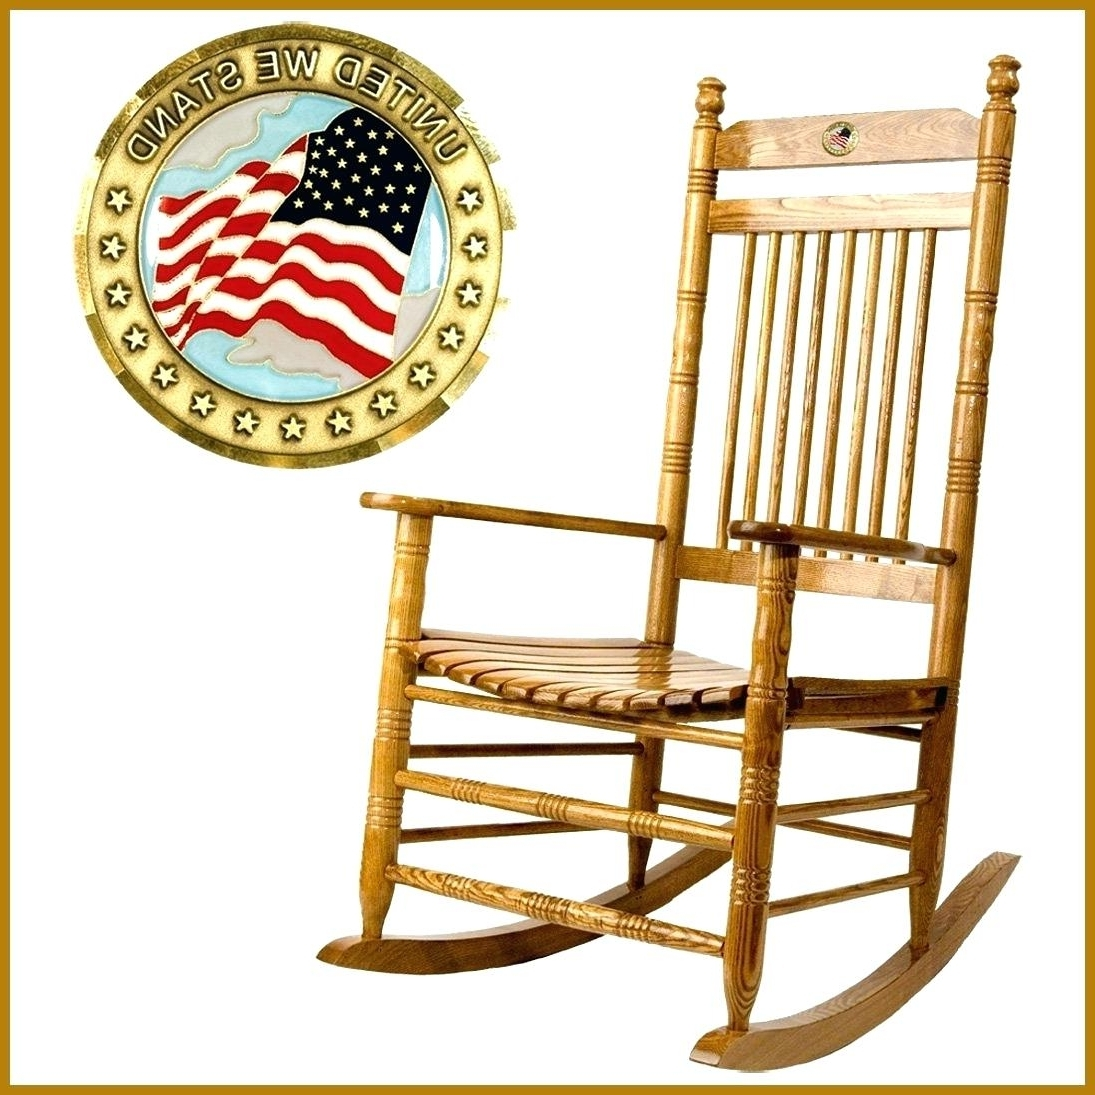 Rocking Chairs At Cracker Barrel Throughout Current Cracker Barrel Rocking Chair Cushions Covers For Sale Rocker Pads – (View 14 of 20)